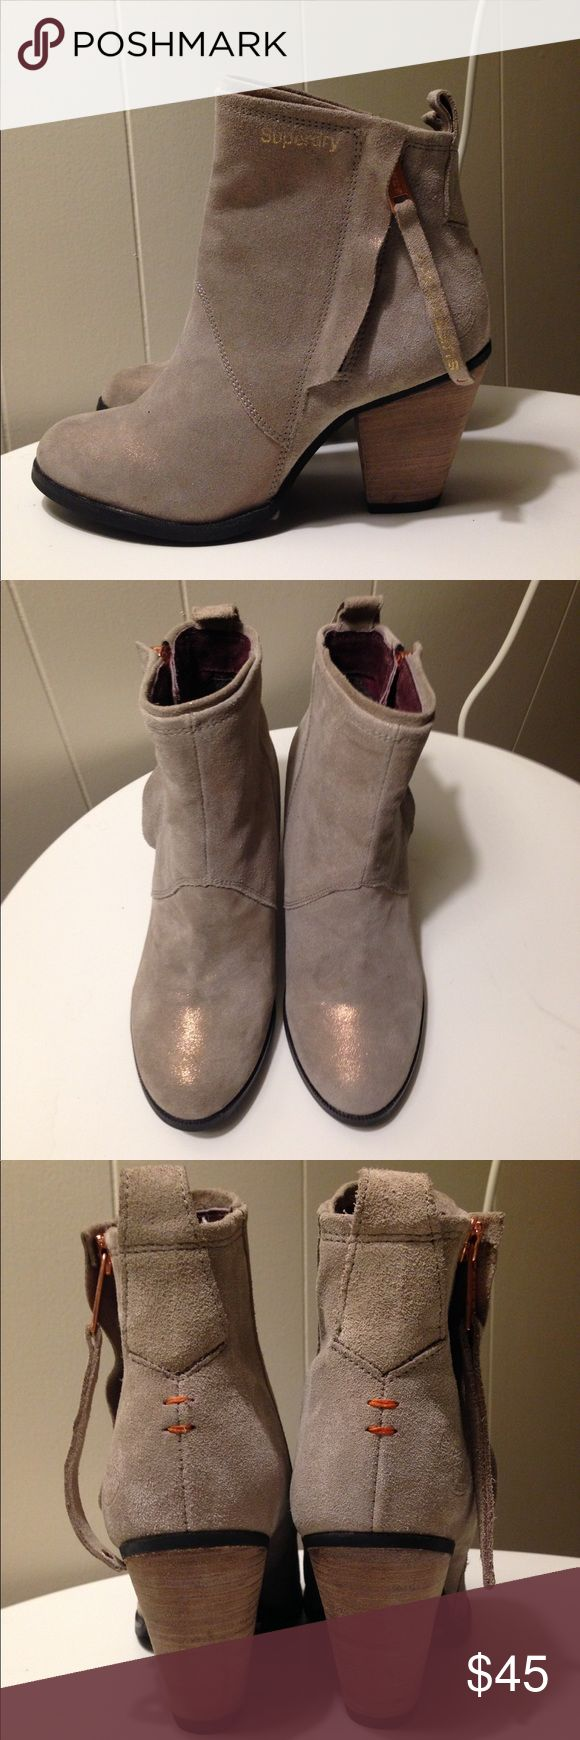 """SuperDry taupe / beige Dillanger Bootie Shimmery taupe / beige bootie with metal rose gold zipper. 3"""" wood heel.  Never worn, only tried on. Real leather suede outside and nice thick canvas inside.  Amazing quality boots and brand new. Superdry Shoes Ankle Boots & Booties"""